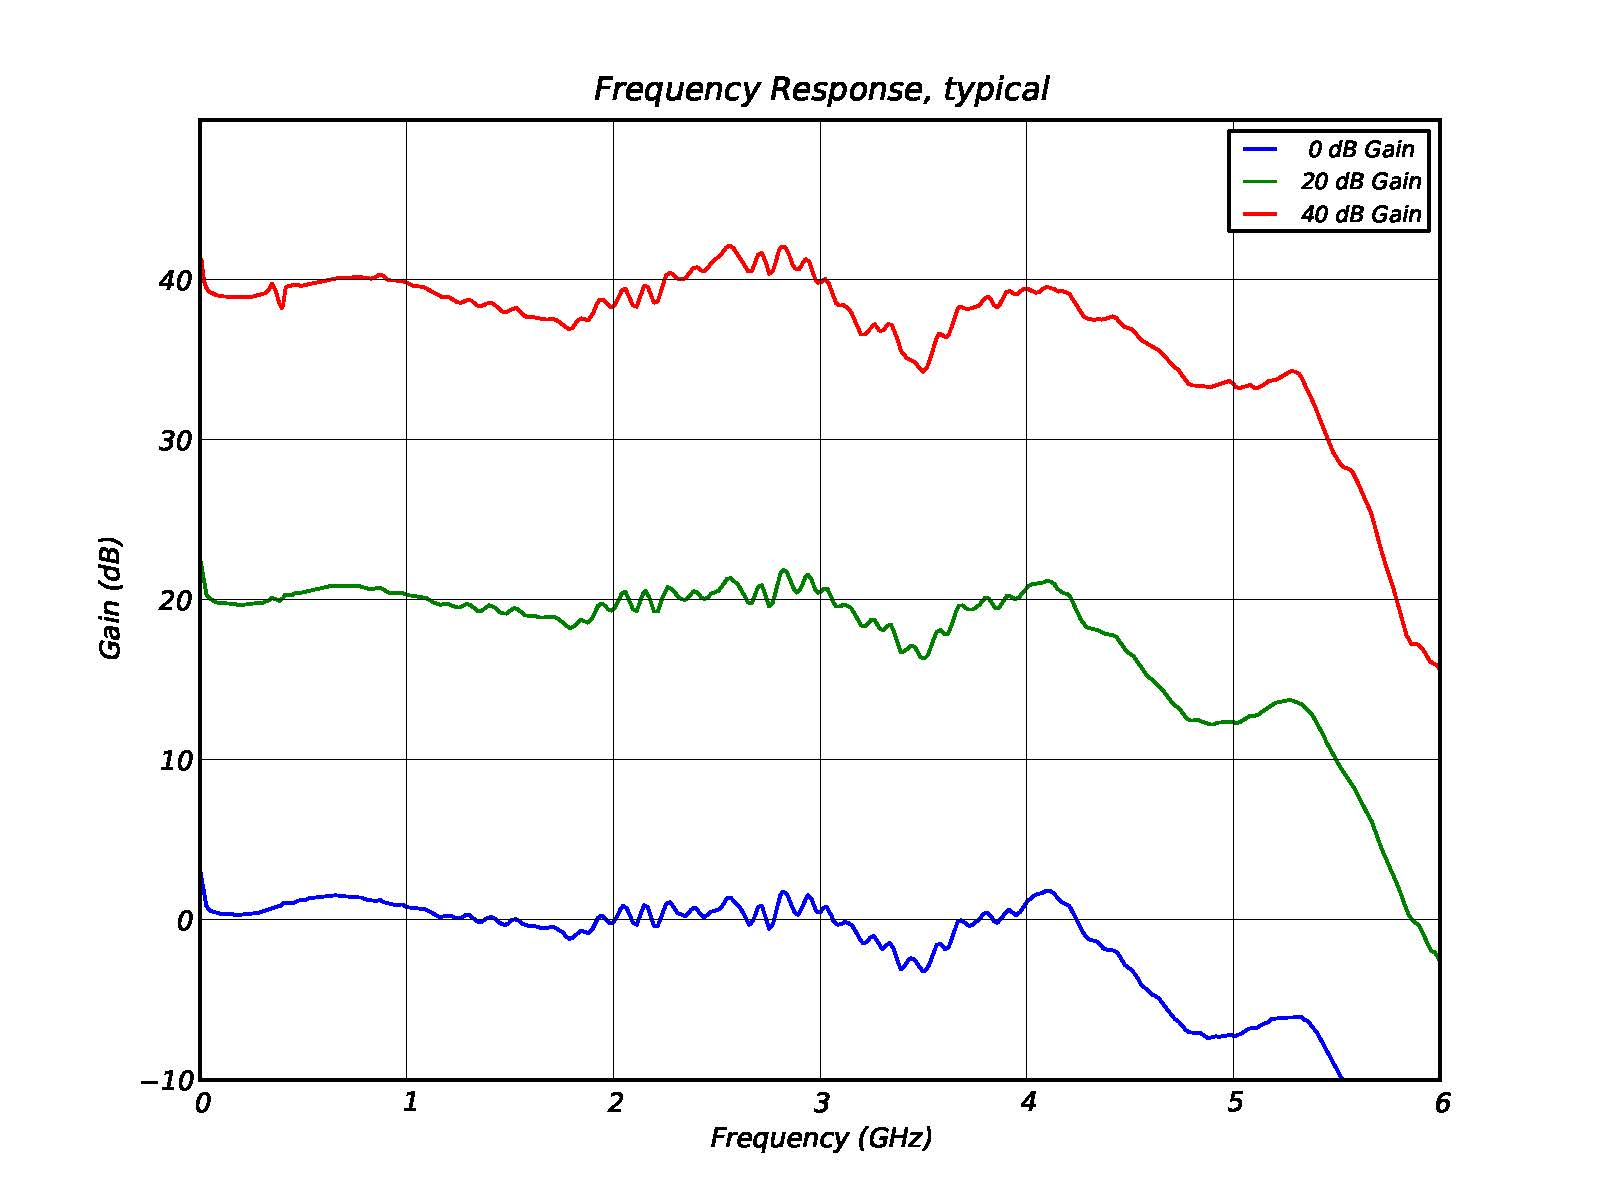 DAA Frequency Response